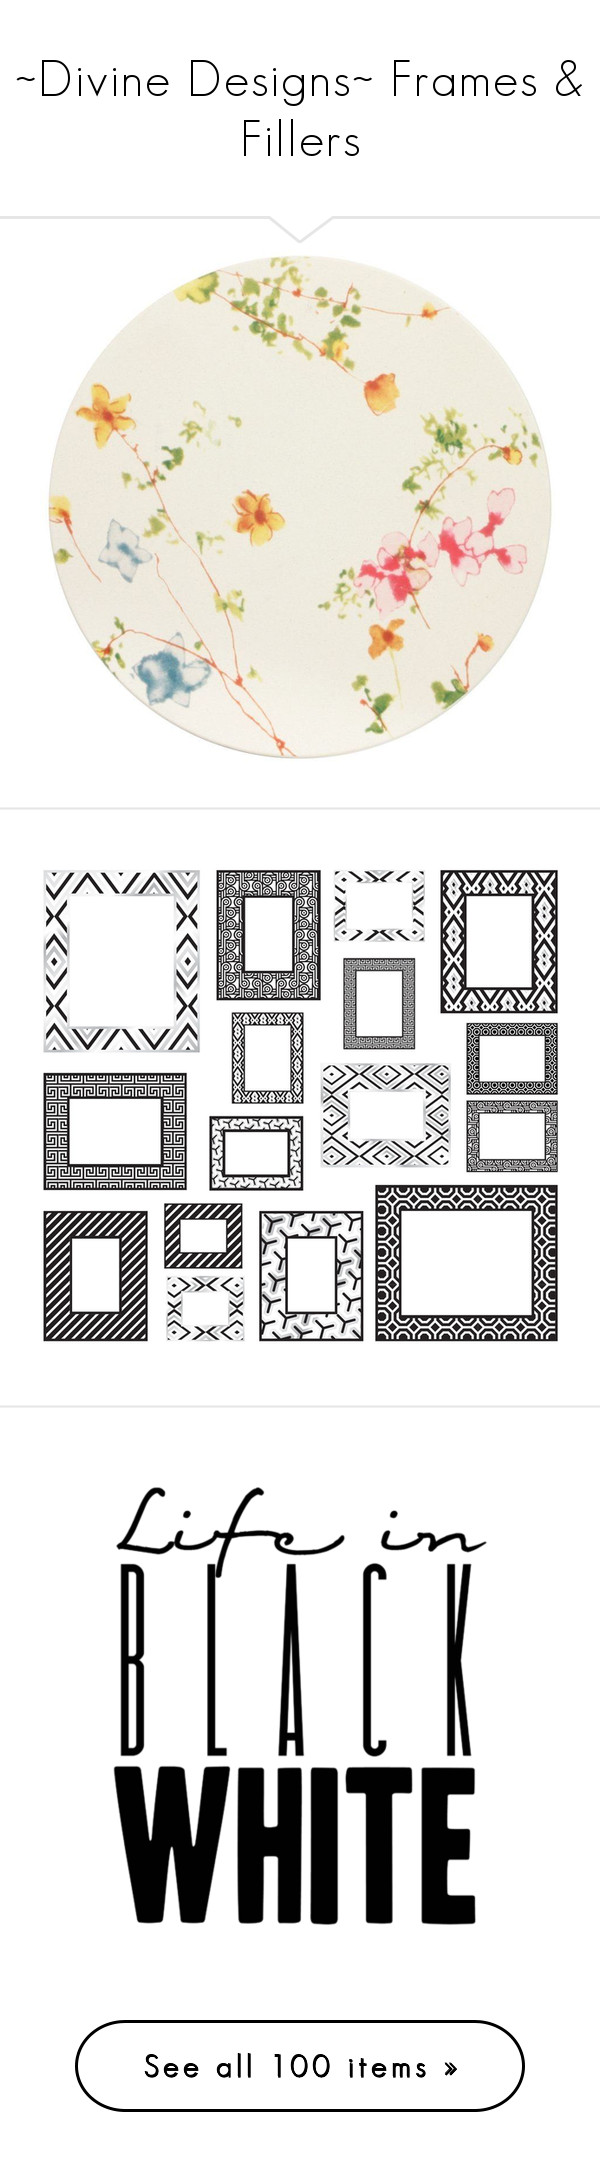 """""""~Divine Designs~ Frames & Fillers"""" by creations-by-lynn ❤ liked on Polyvore featuring home, kitchen & dining, backgrounds, circles, fillers, decoration, pictures, text, patterns and circular"""